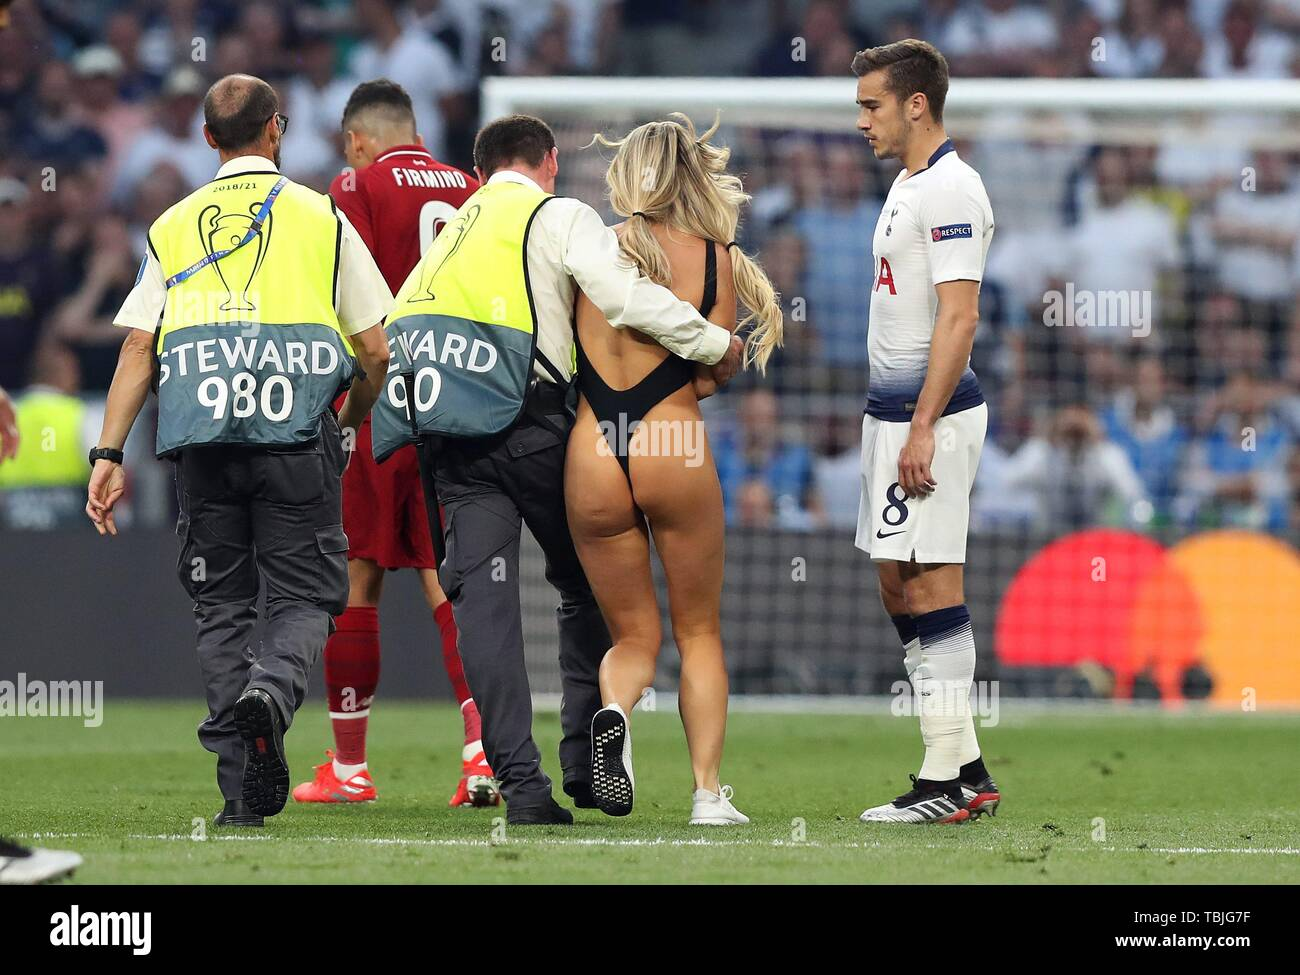 EXTRA: Lady Who Ran Out During UCL Finals In Madrid Talks